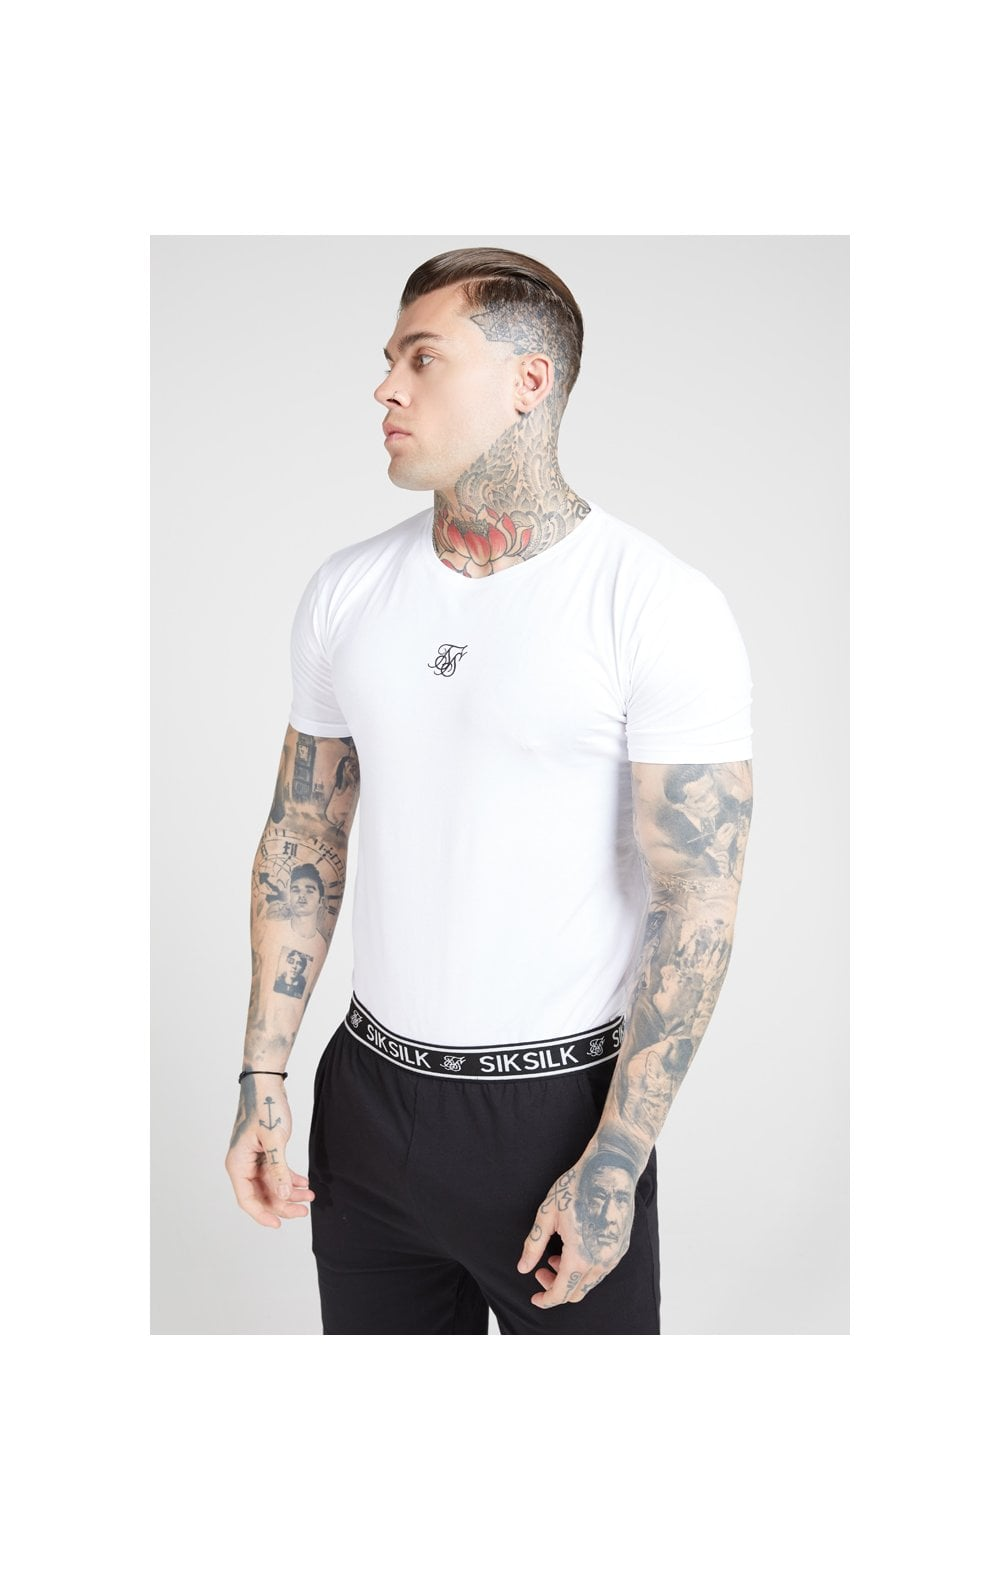 Load image into Gallery viewer, SikSilk Lounge Tee - White & Navy (2 Pack) - 1 White Tee & 1 Navy Tee (3)